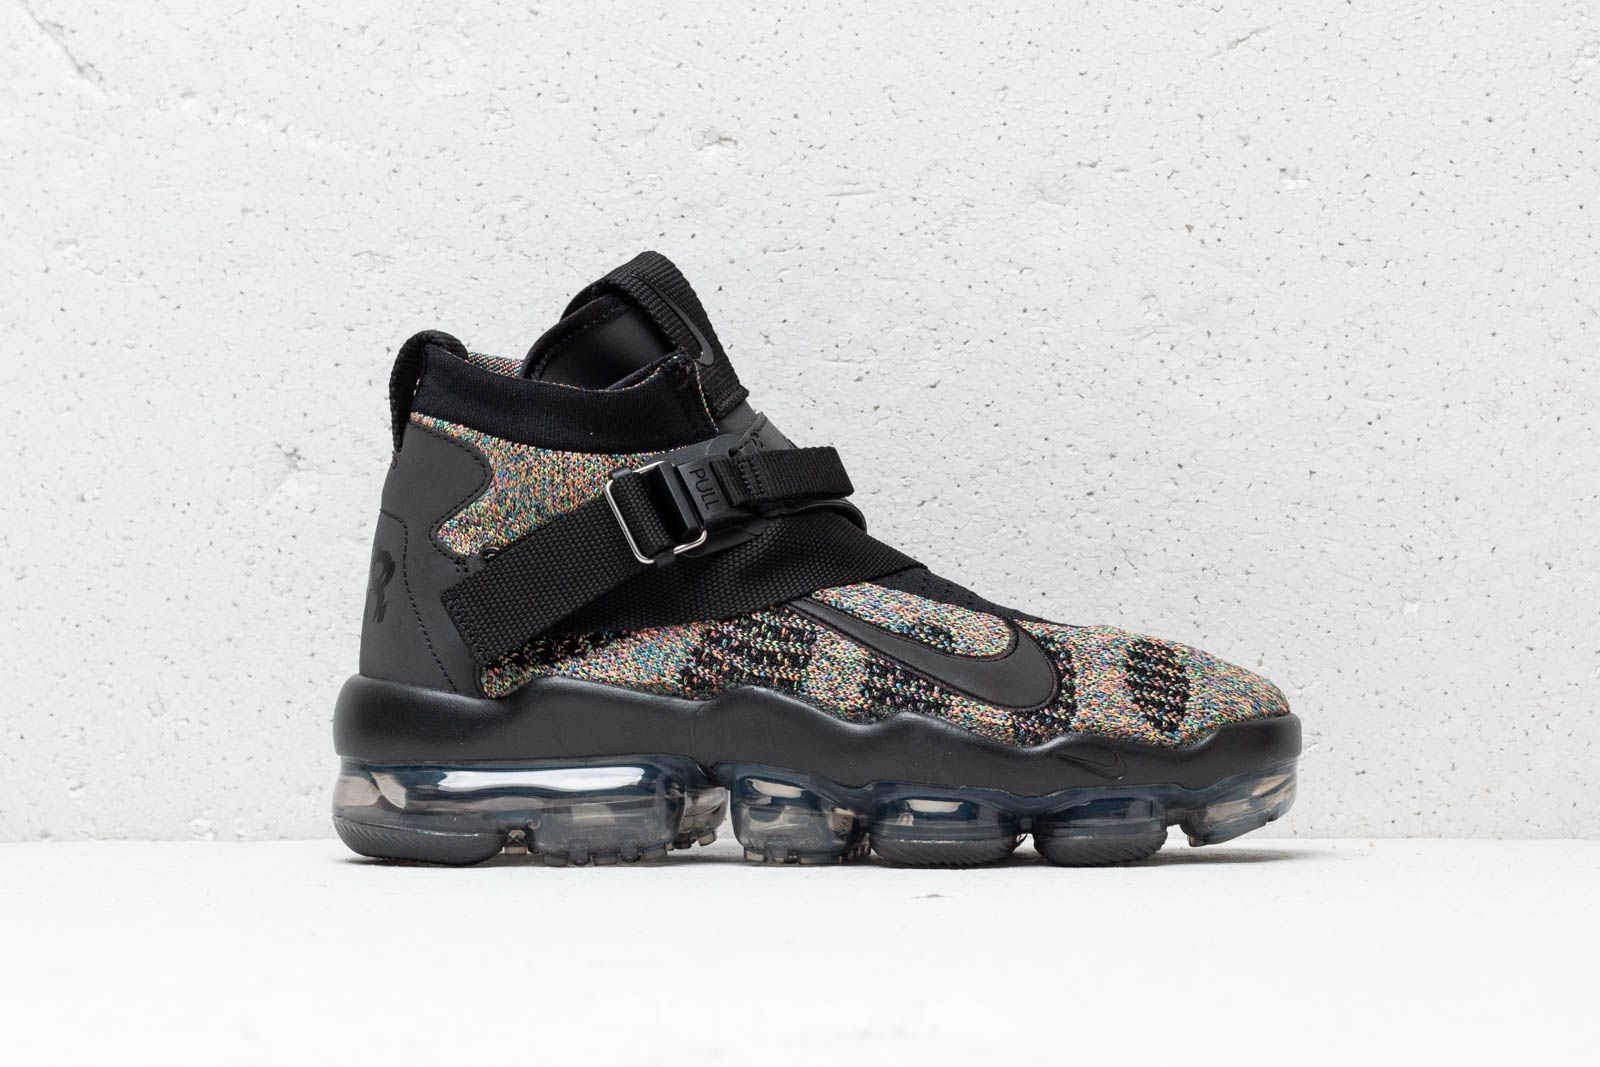 e70276aed0e2 Nike Air Vapormax Premier Flyknit Black  Signal Blue-Green Strike at a  great price